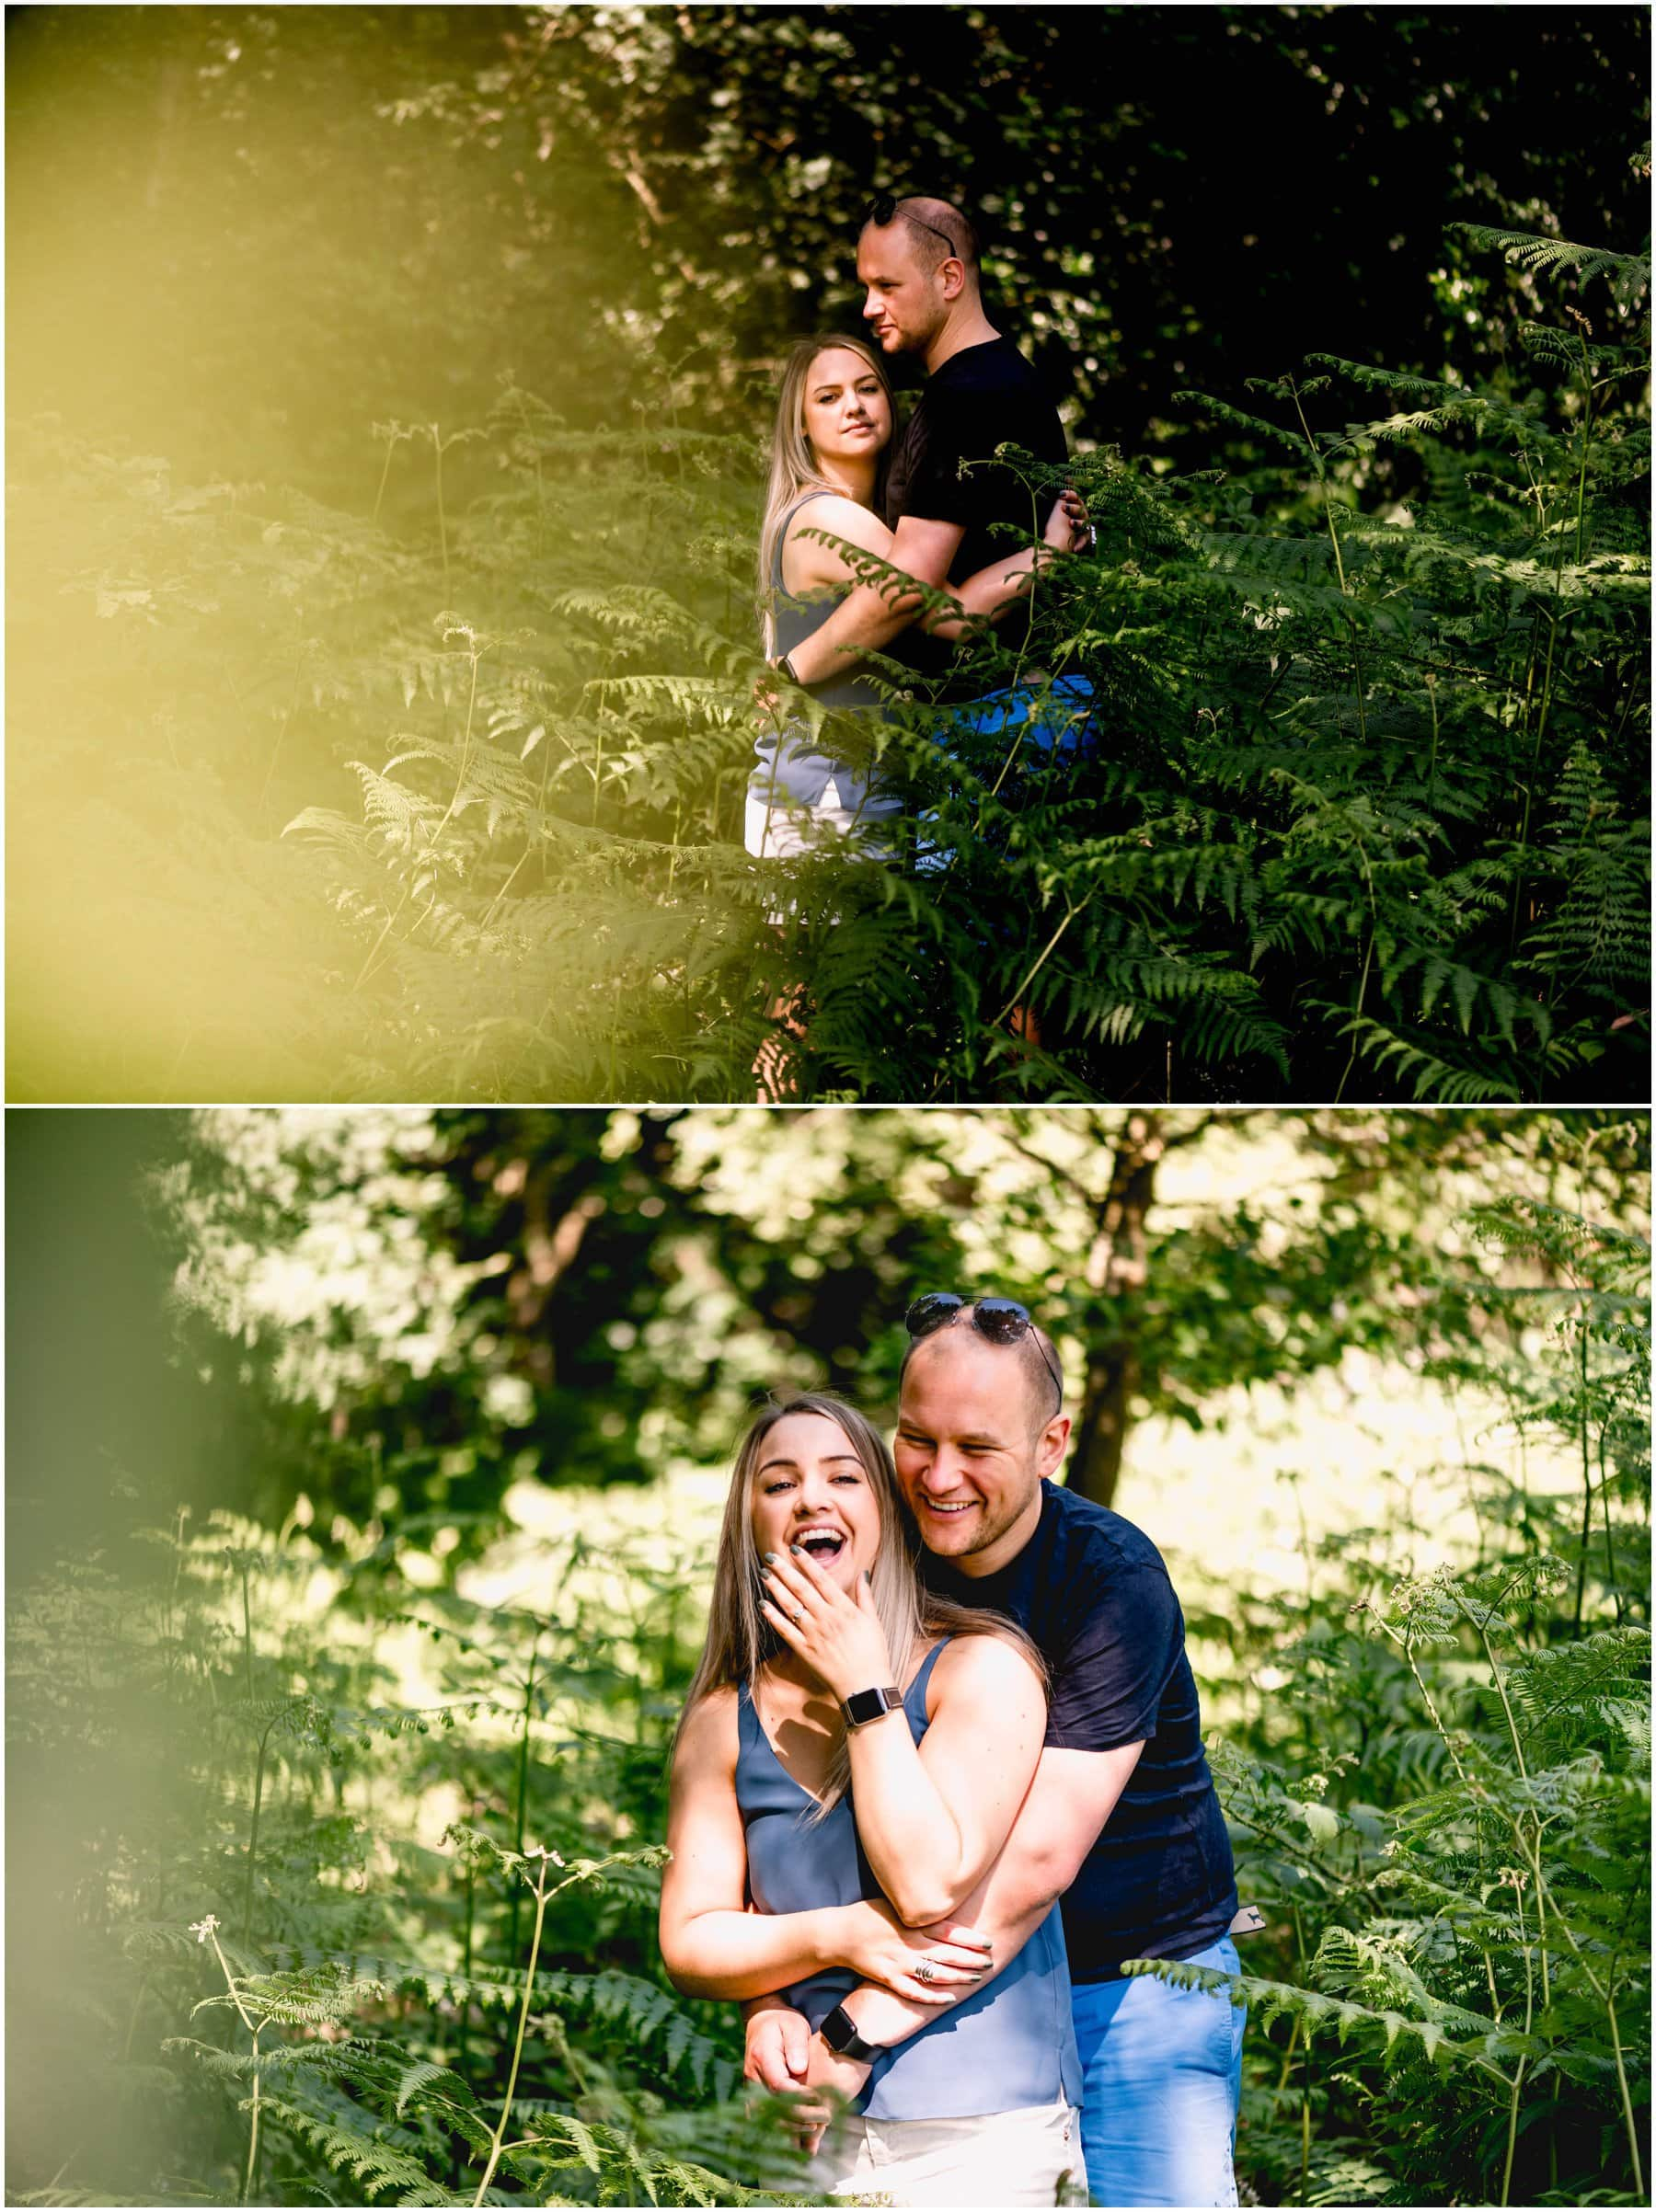 engagement shoot in Sutton Park in Sutton Coldfield with Sadie and James laughing and cuddling